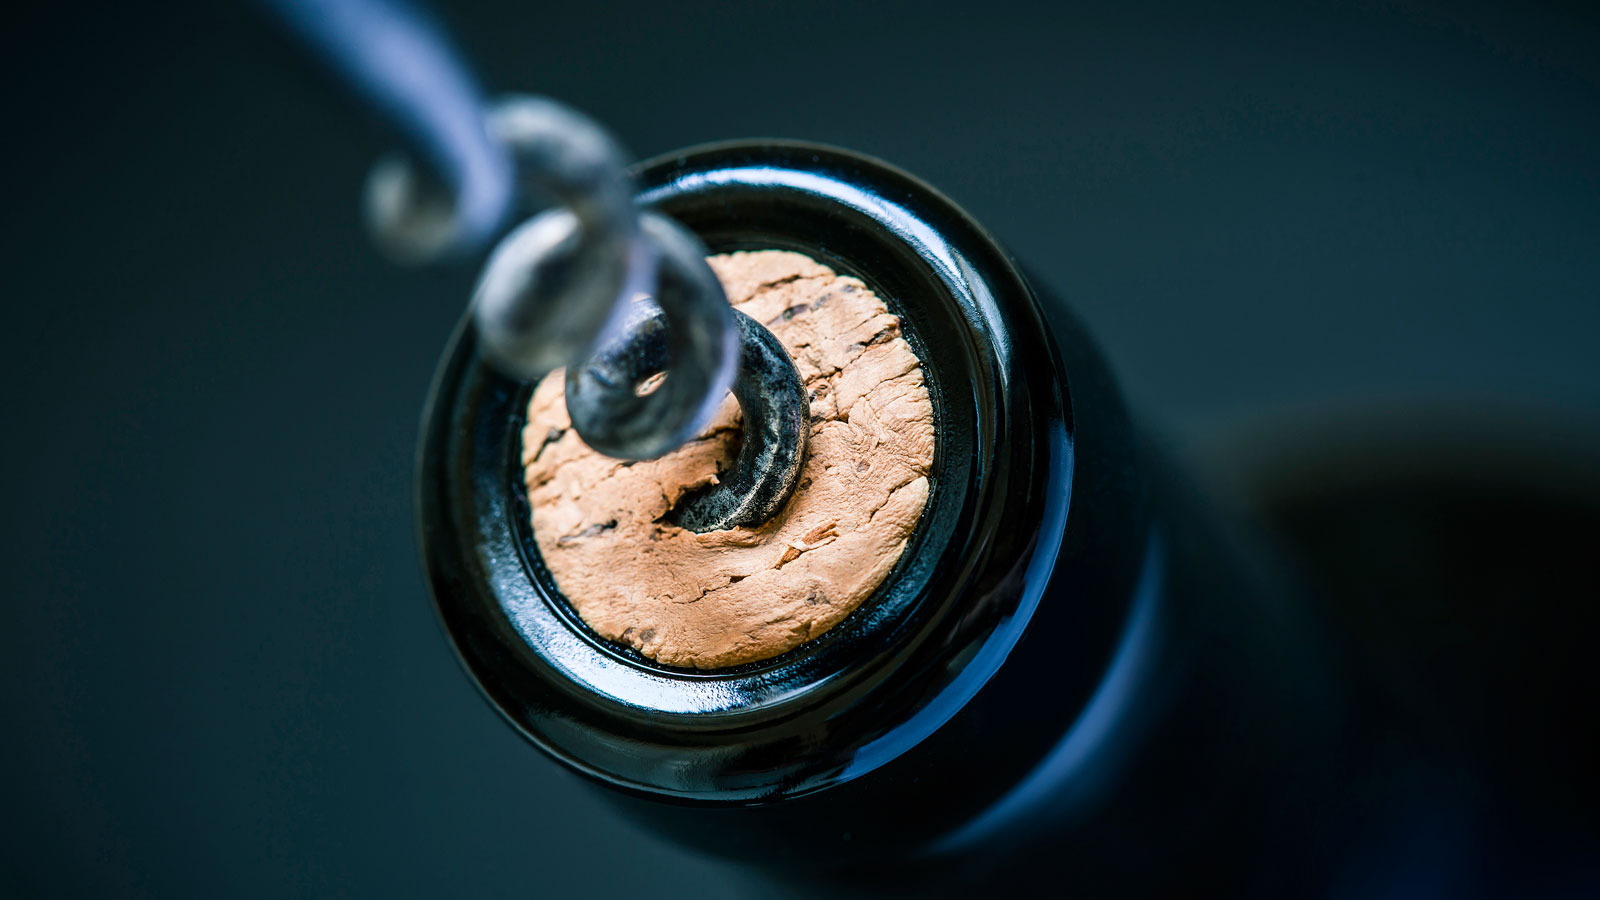 wine-cork-sound-experiment-FT-BLOG0717.jpg